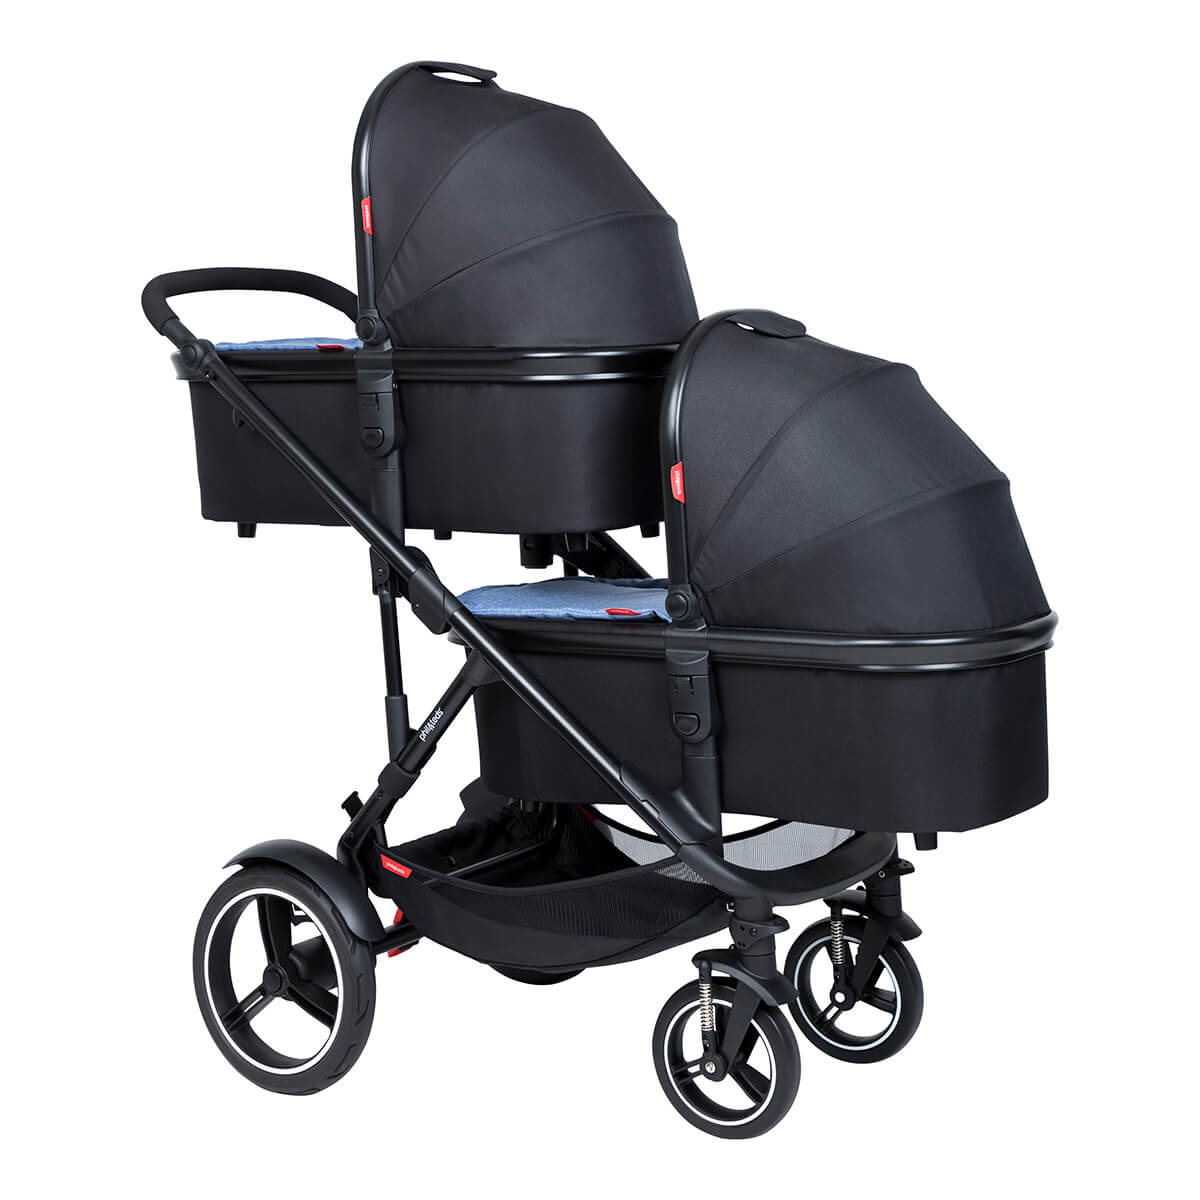 https://cdn.accentuate.io/4509912891469/19466204610754/philteds-voyager-inline-buggy-with-double-snug-carrycots-v1626485556179.jpg?1200x1200